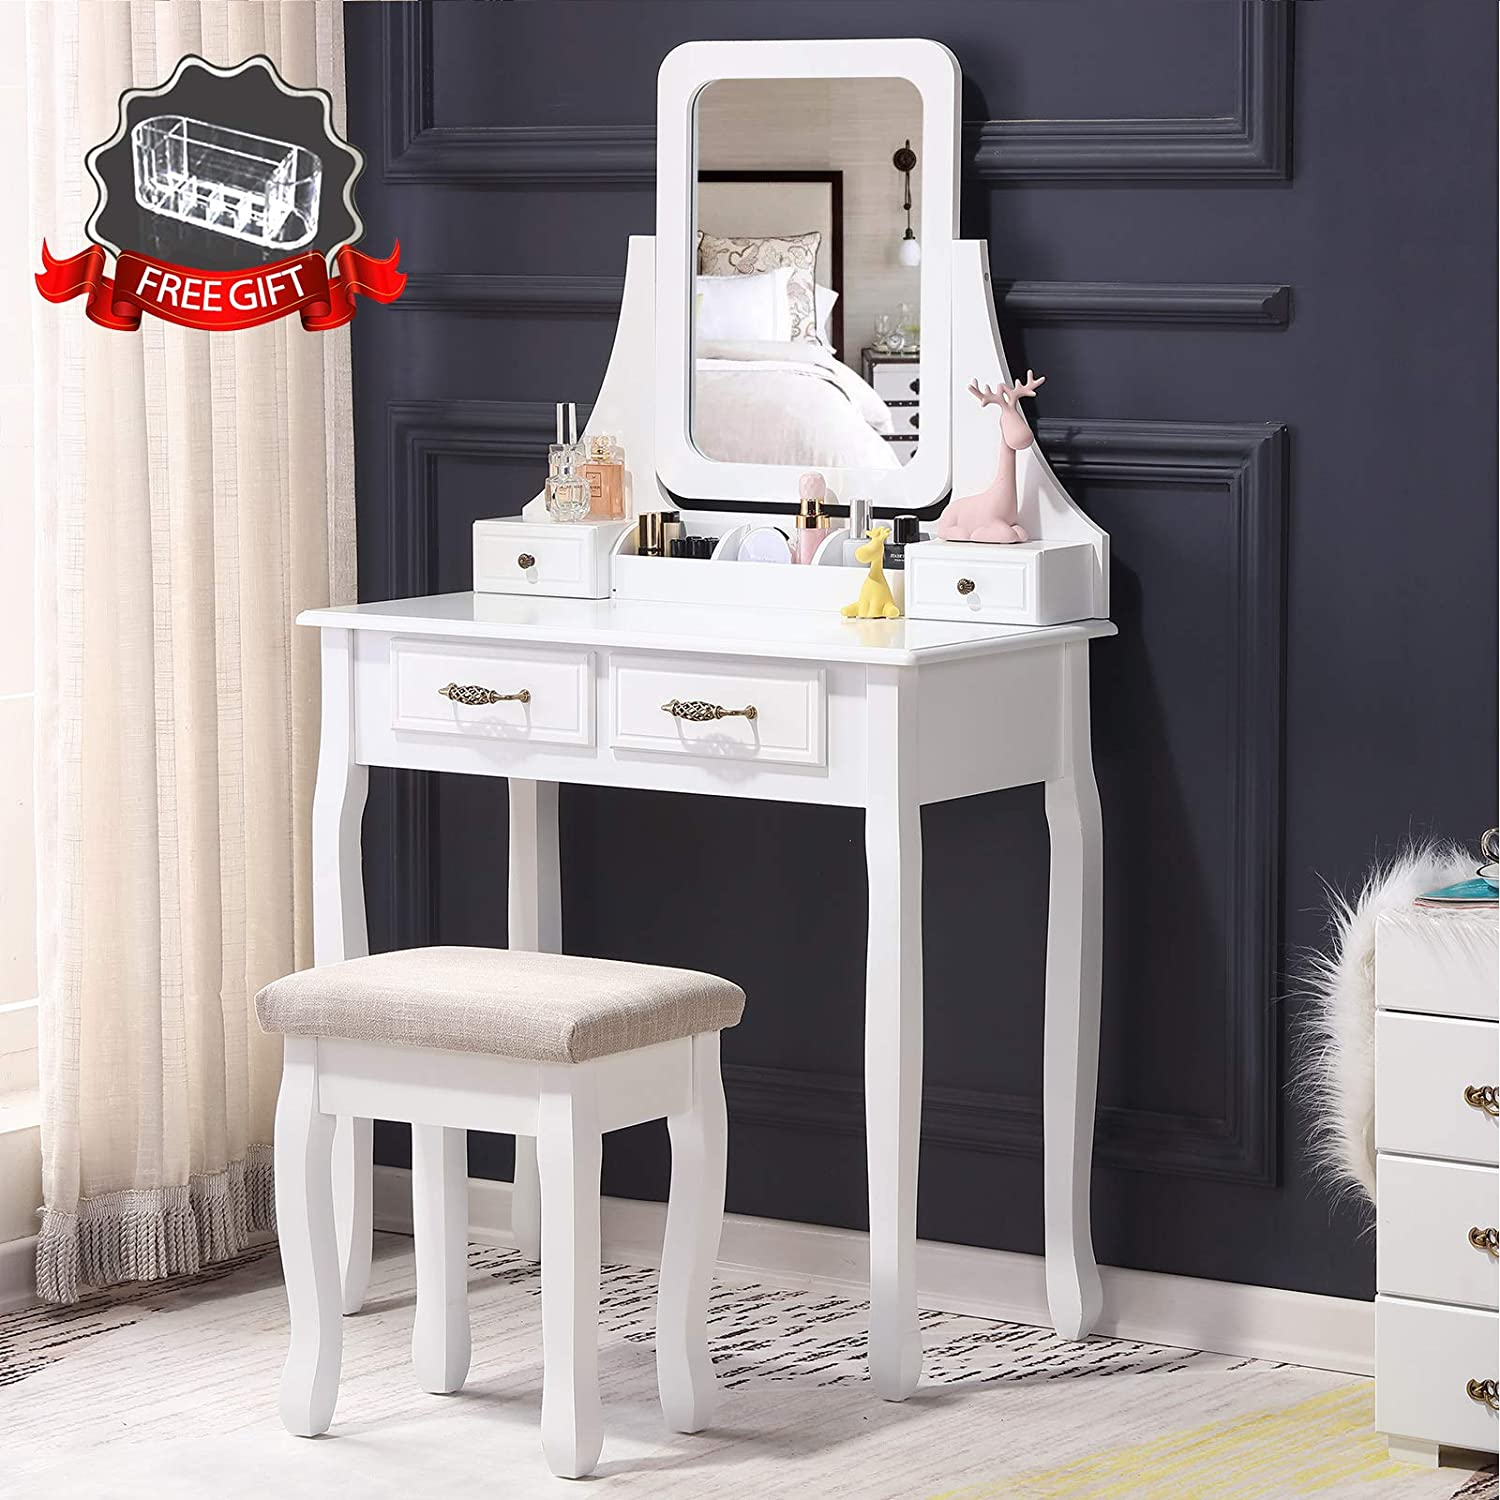 Unihome Vanity Set with Mirror and Cushioned Stool Dressing Table Vanity Makeup Table 4 Drawers for Women